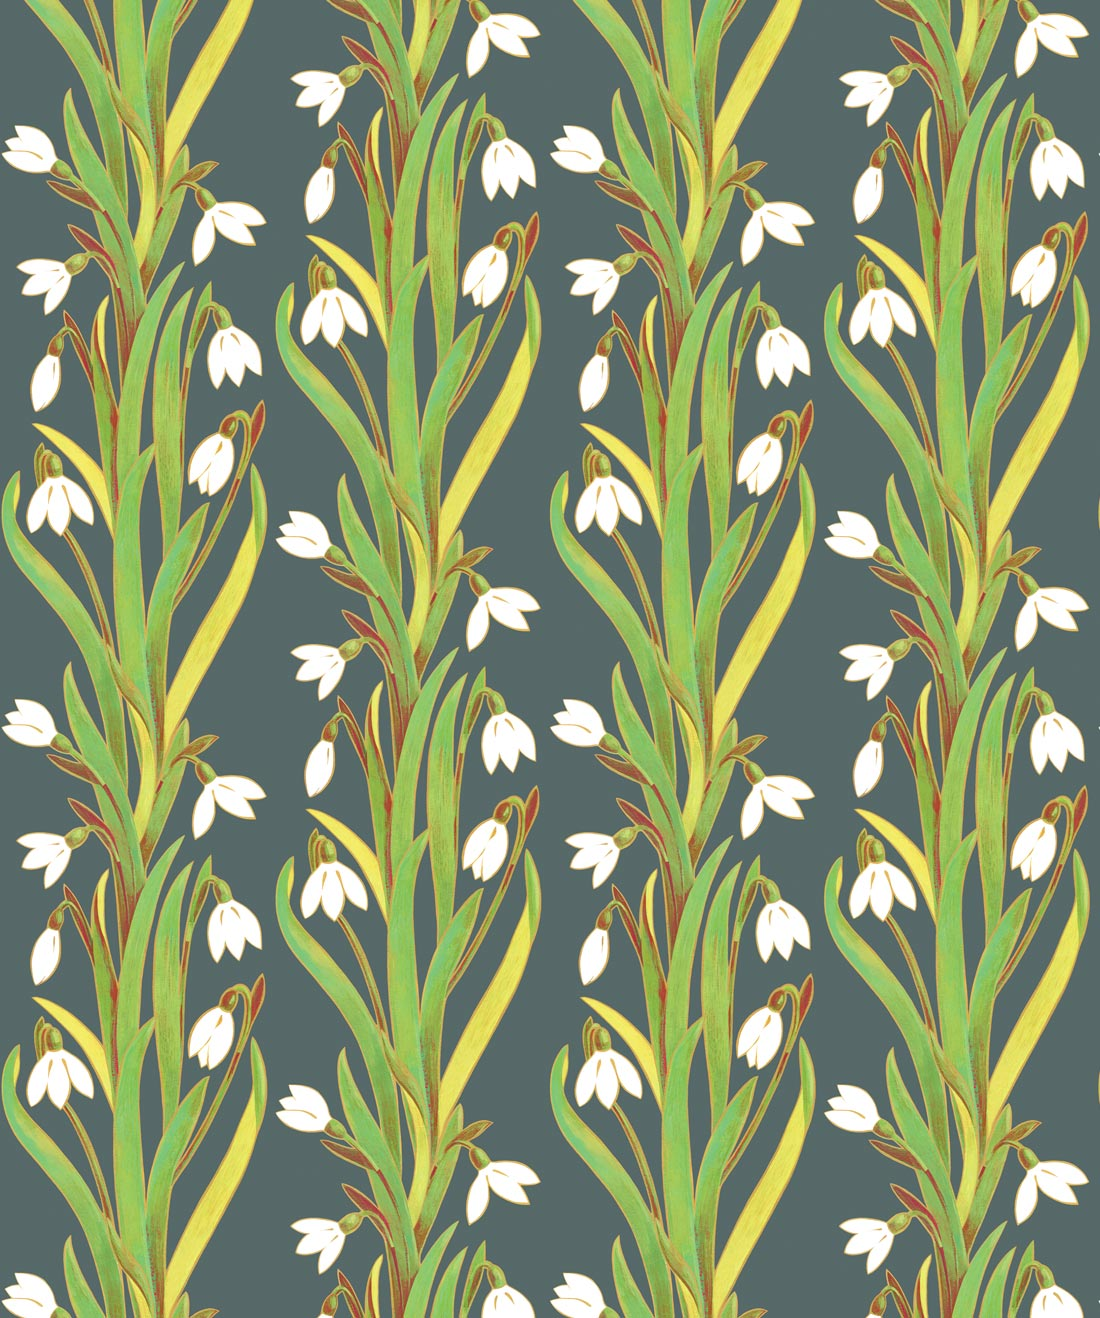 Snow Drop Wallpaper